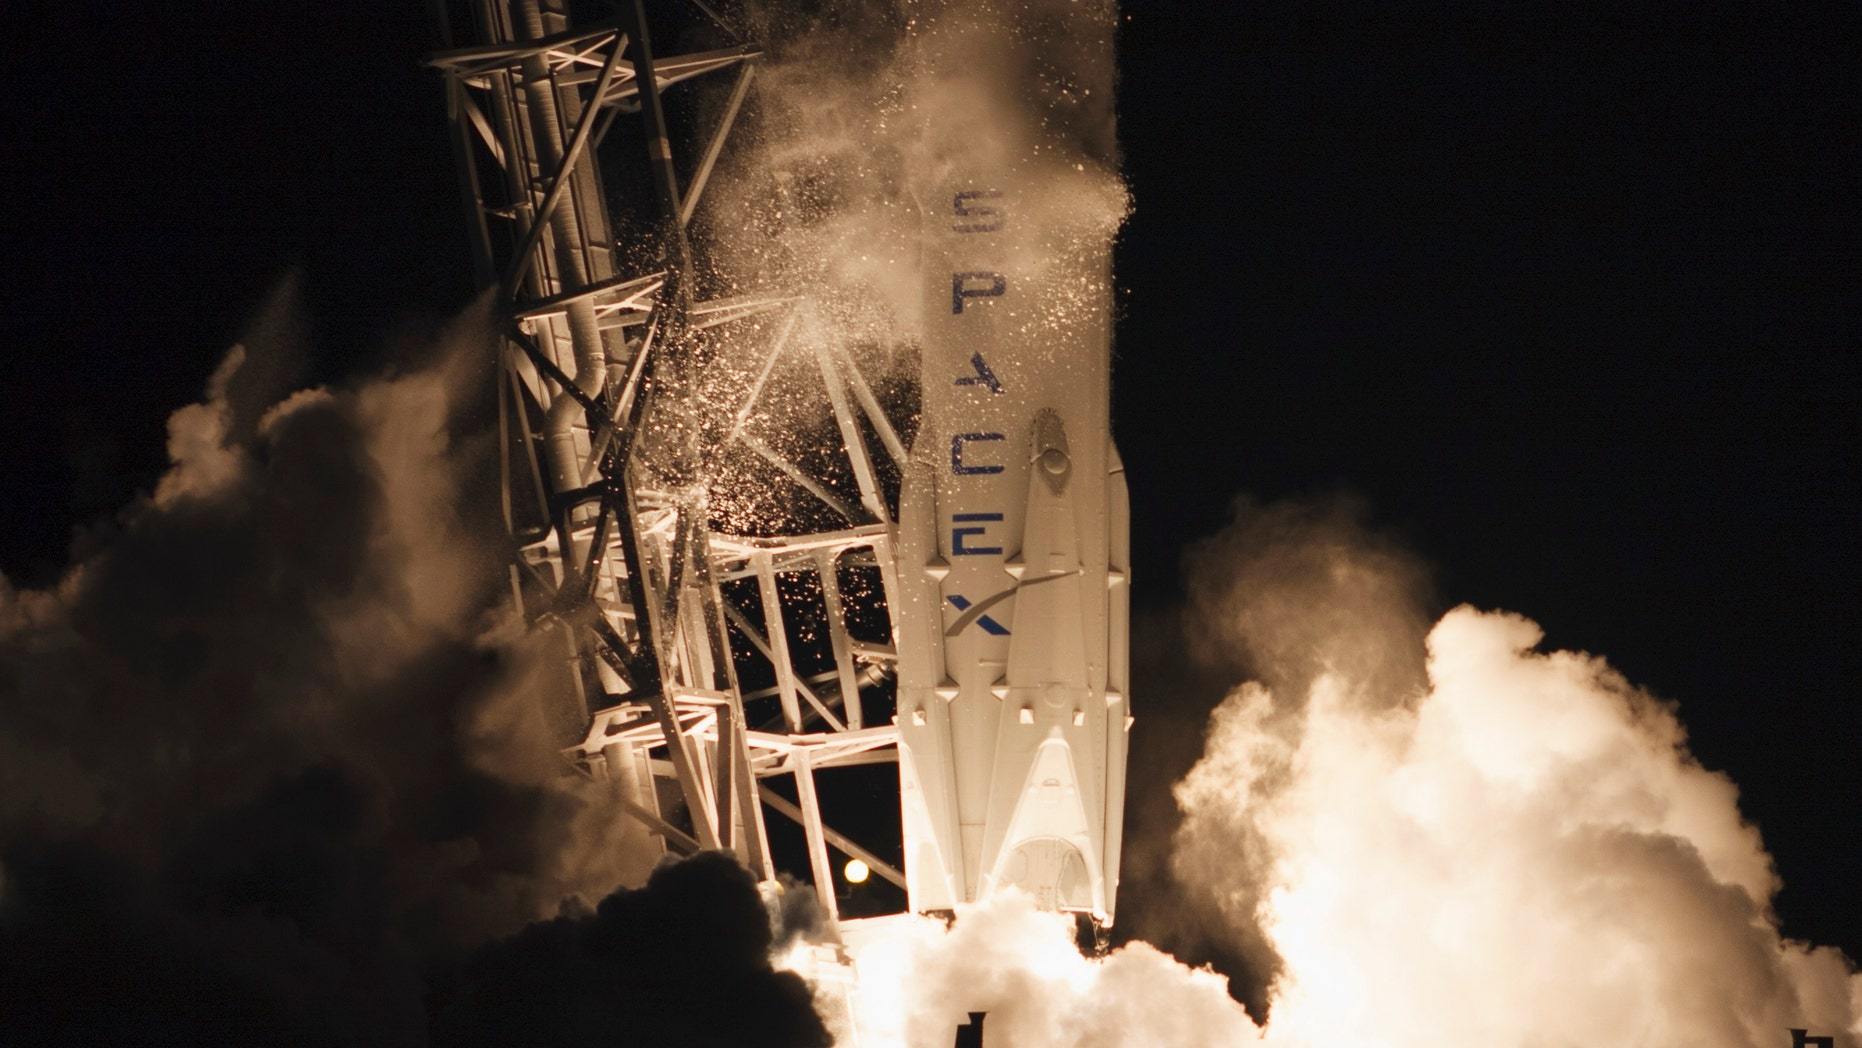 The unmanned Falcon 9 rocket launched by SpaceX on a cargo resupply service mission to the International Space Station (ISS), lifts off from the Cape Canaveral Air Force Station in Cape Canaveral, Florida Jan. 10, 2015.